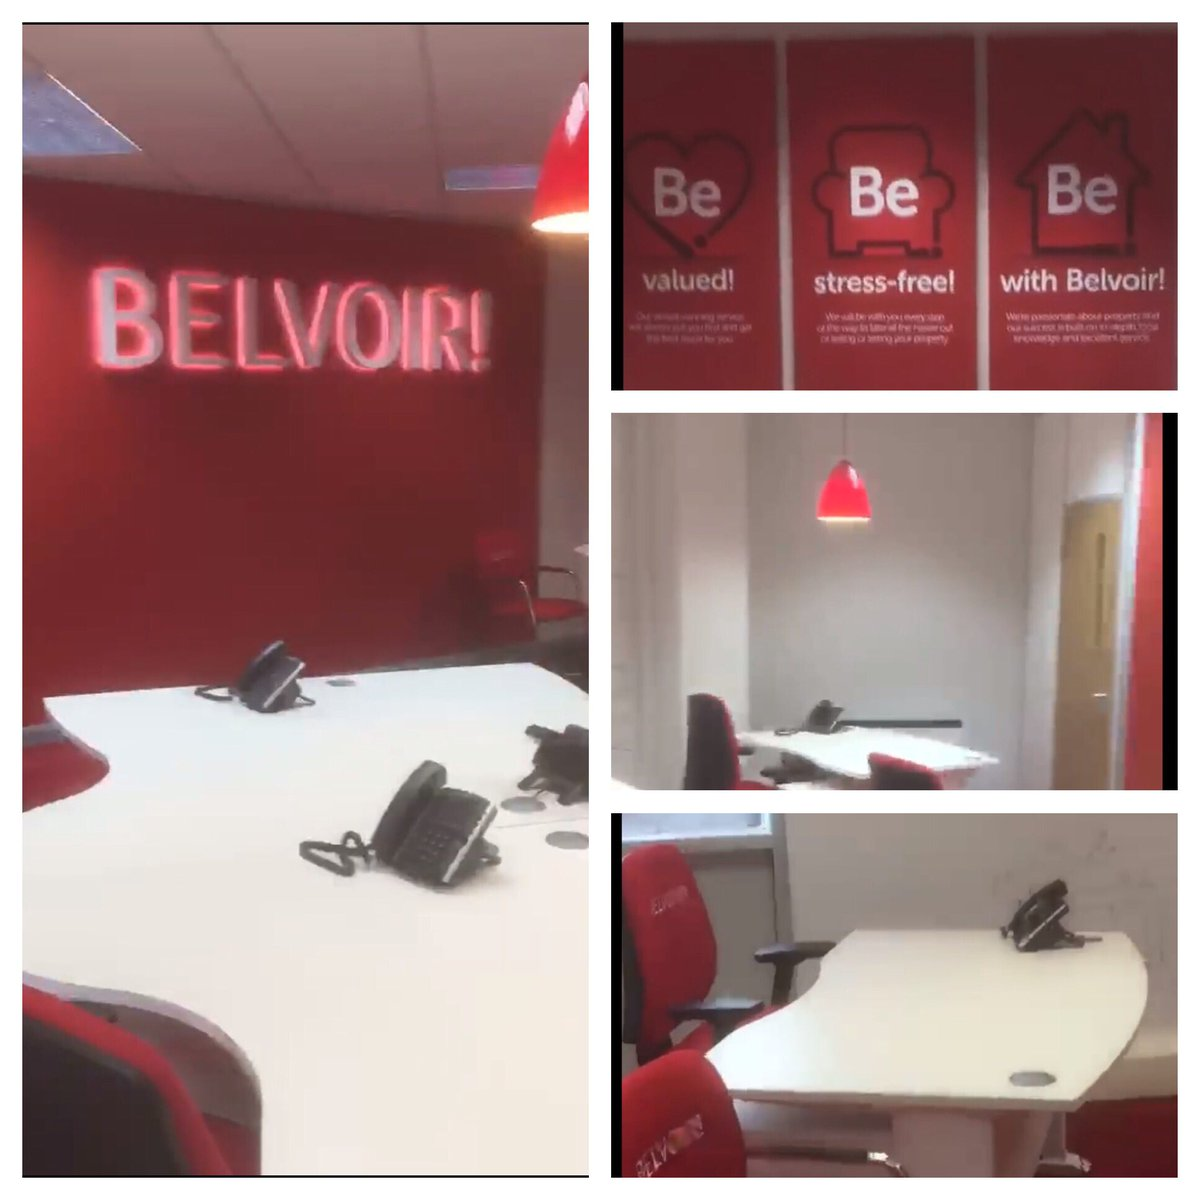 We&#39;re leading the way with our amazing new offices for #teambelvoir in #telford #Shropshire #property #estas #2017 <br>http://pic.twitter.com/Qgd4T99AYW